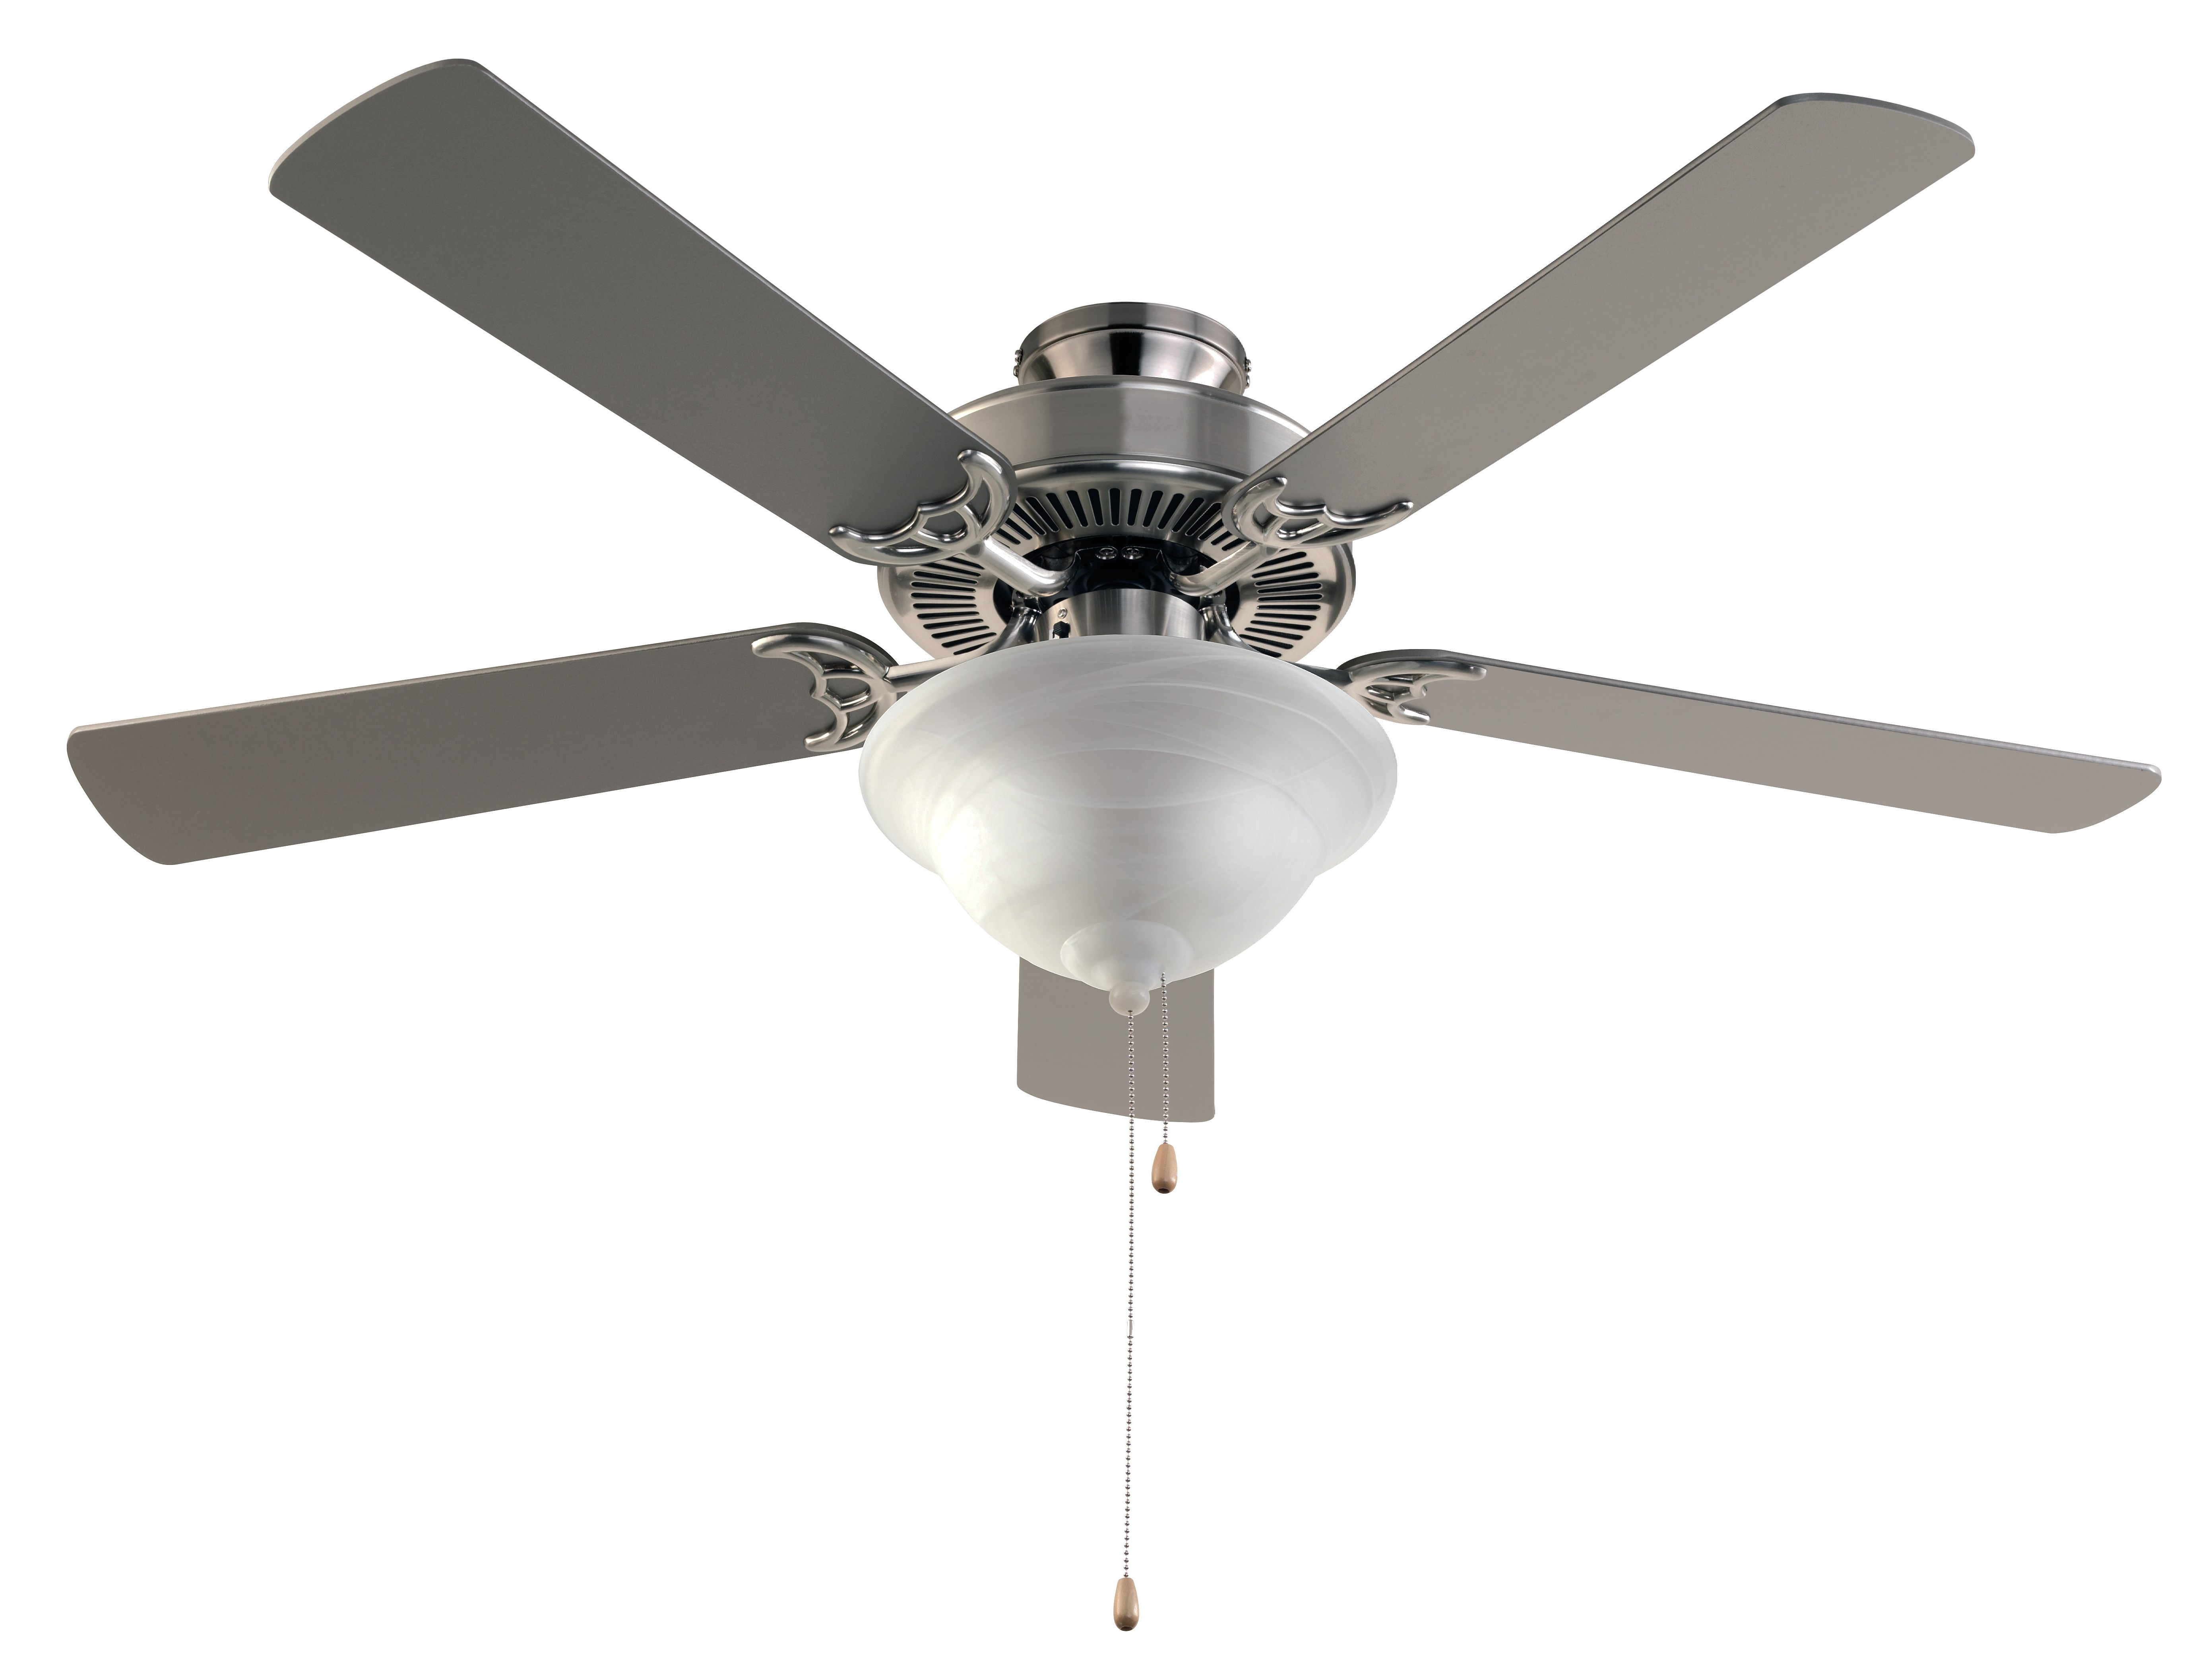 Njie Caged Crystal 5 Blade Ceiling Fans Regarding Current Hamlett 5 Blade Ceiling Fan, Light Kit Included (View 19 of 20)